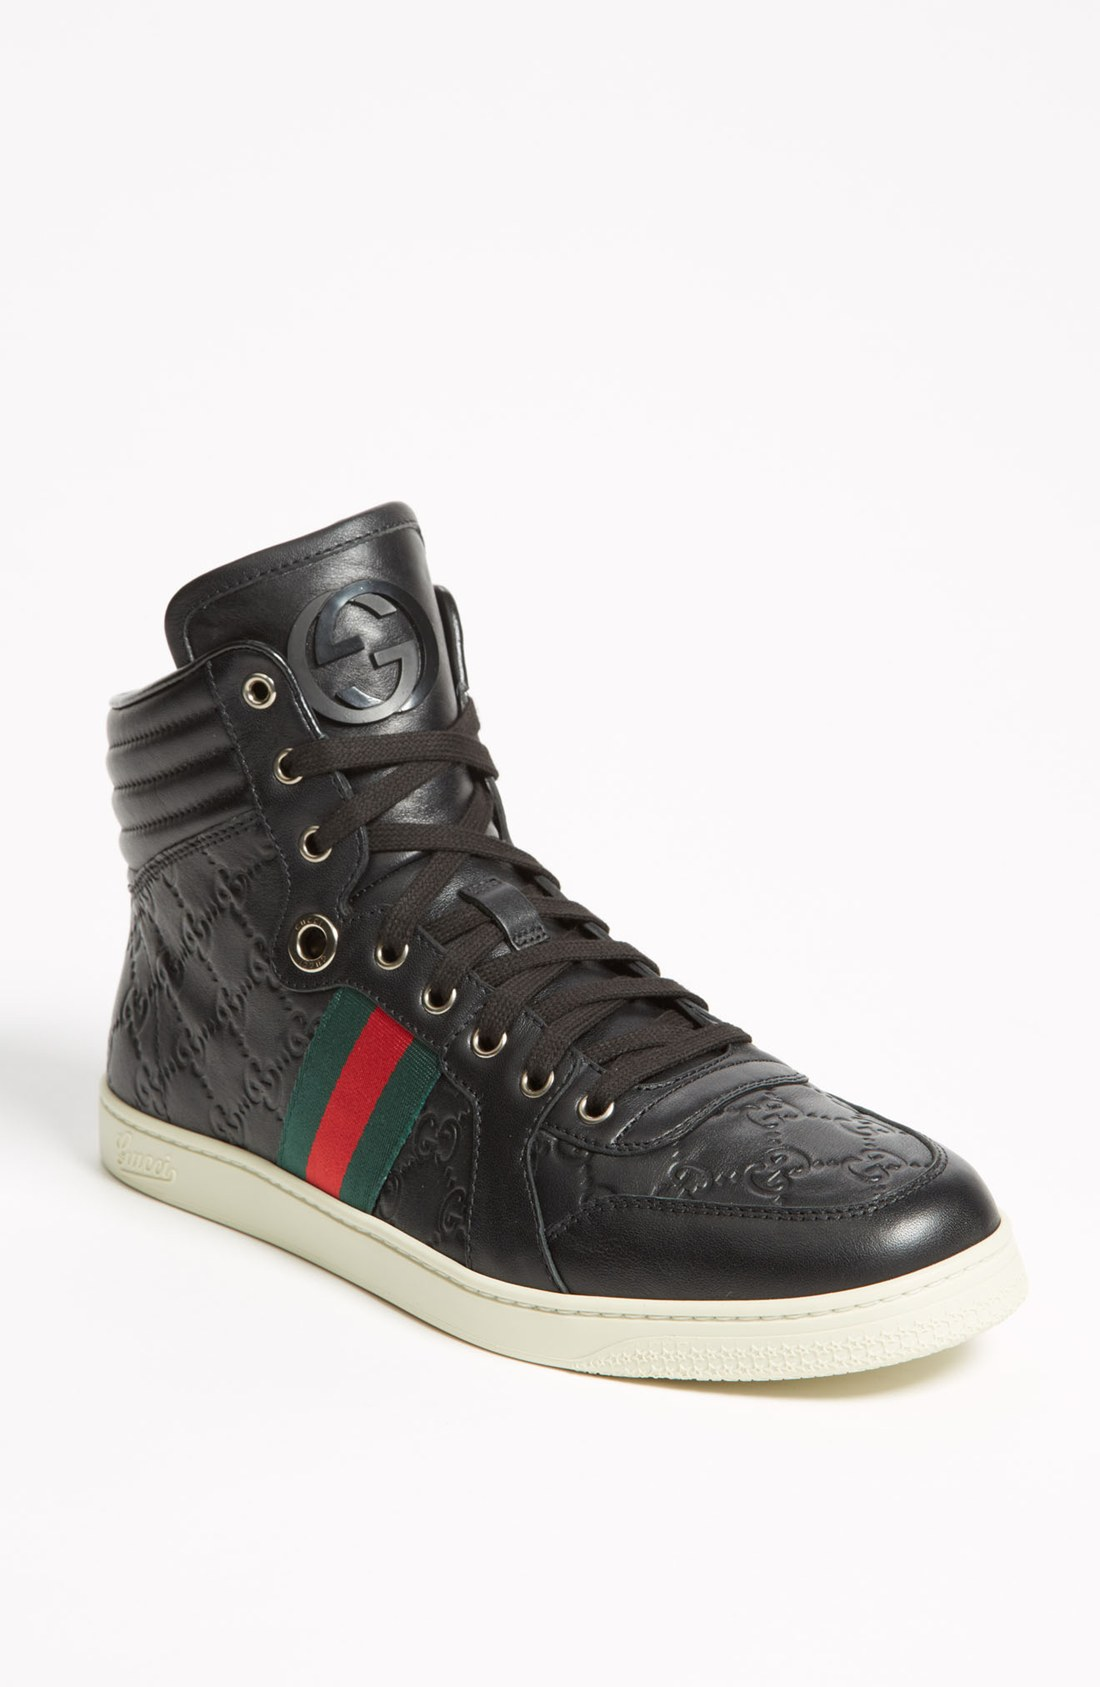 gucci brown ssima leather high top sneaker in black for men lyst. Black Bedroom Furniture Sets. Home Design Ideas